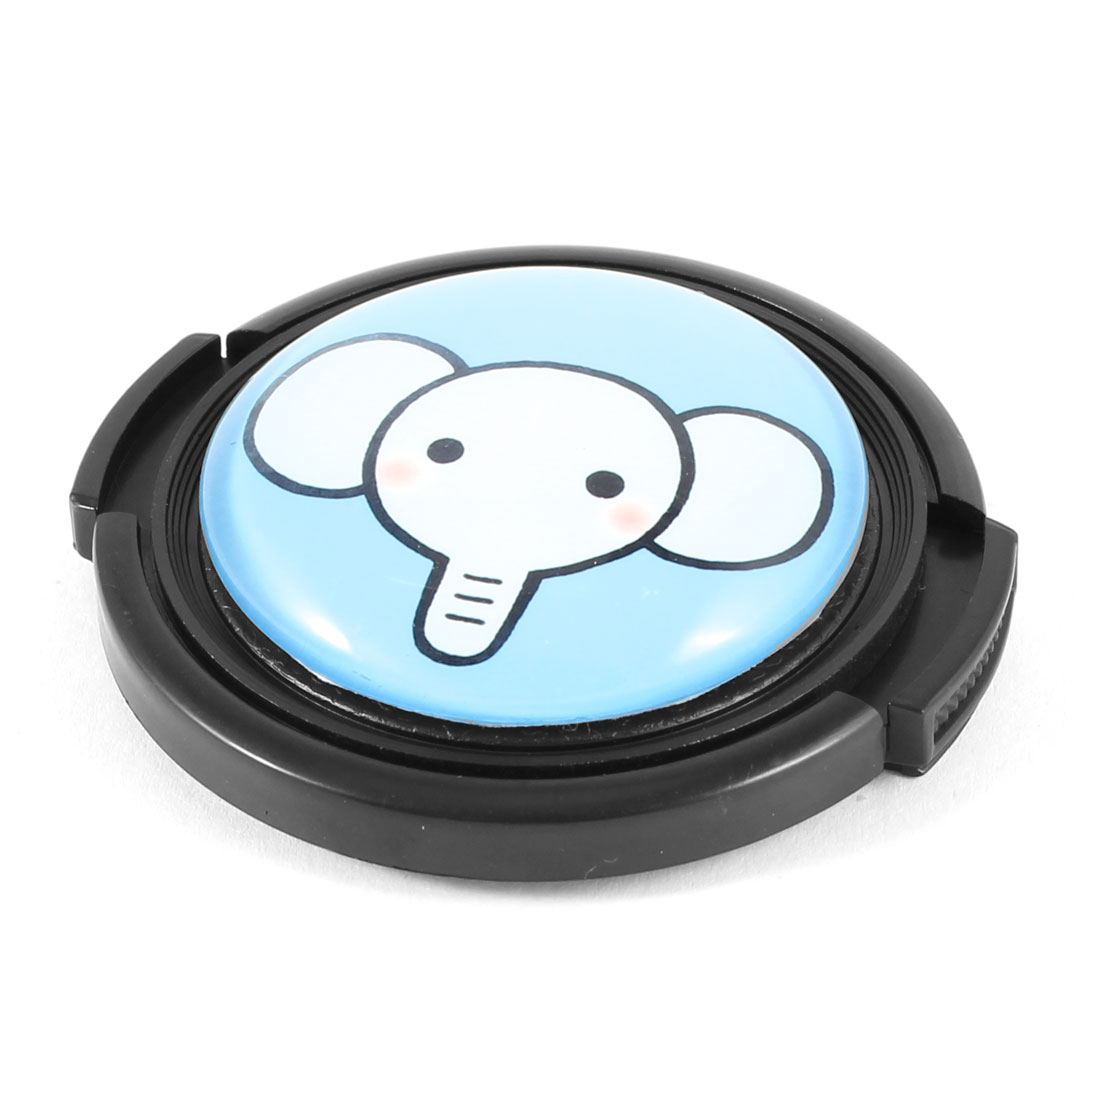 49mm Cartoon Elephant Pattern Clip On Front Lens Cap Cover for DSLR Camera